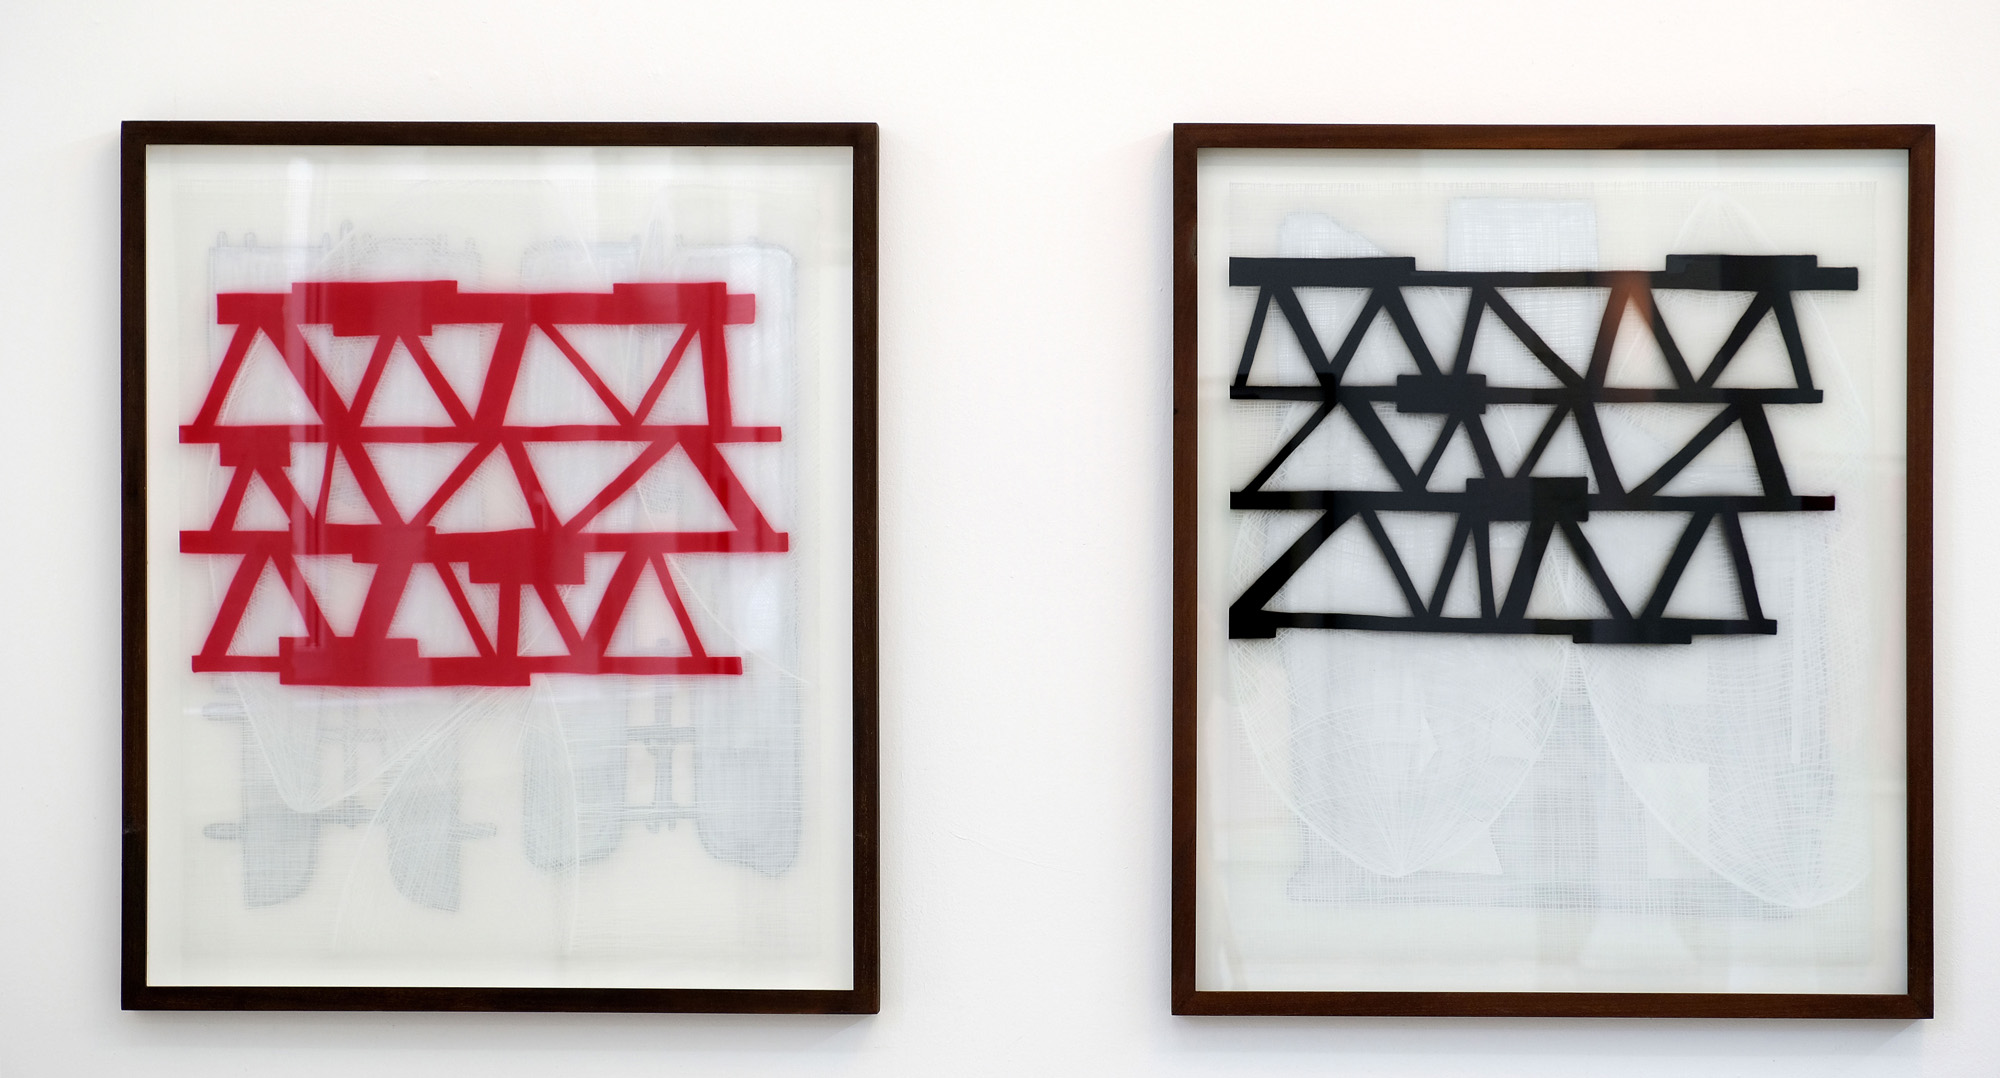 Links: Re-Entry 110 x 94 cm, 2011; Rechts: The Ark, 110 x 94 cm, 2011